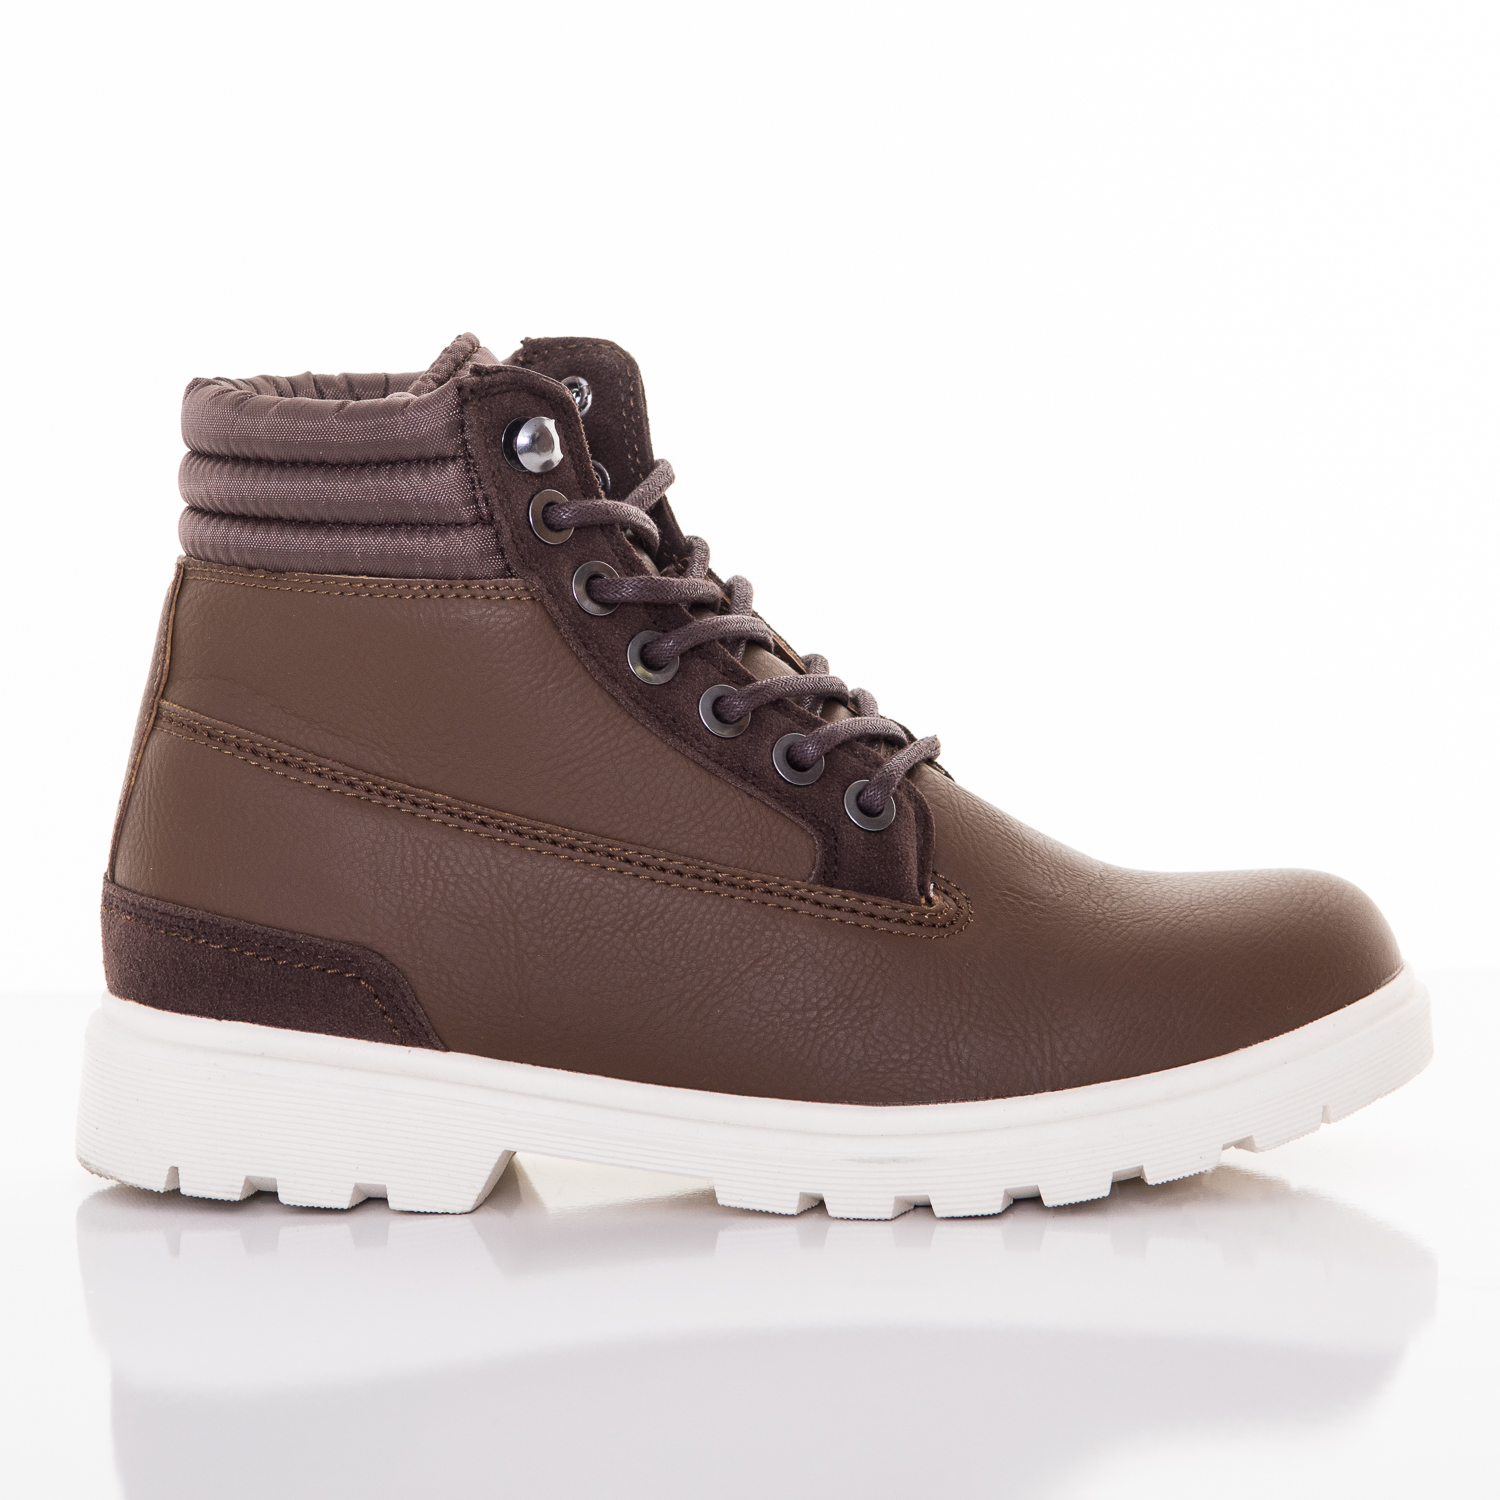 Zimná obuv Urban Classics Winter Boots Brown Darkbrown 37